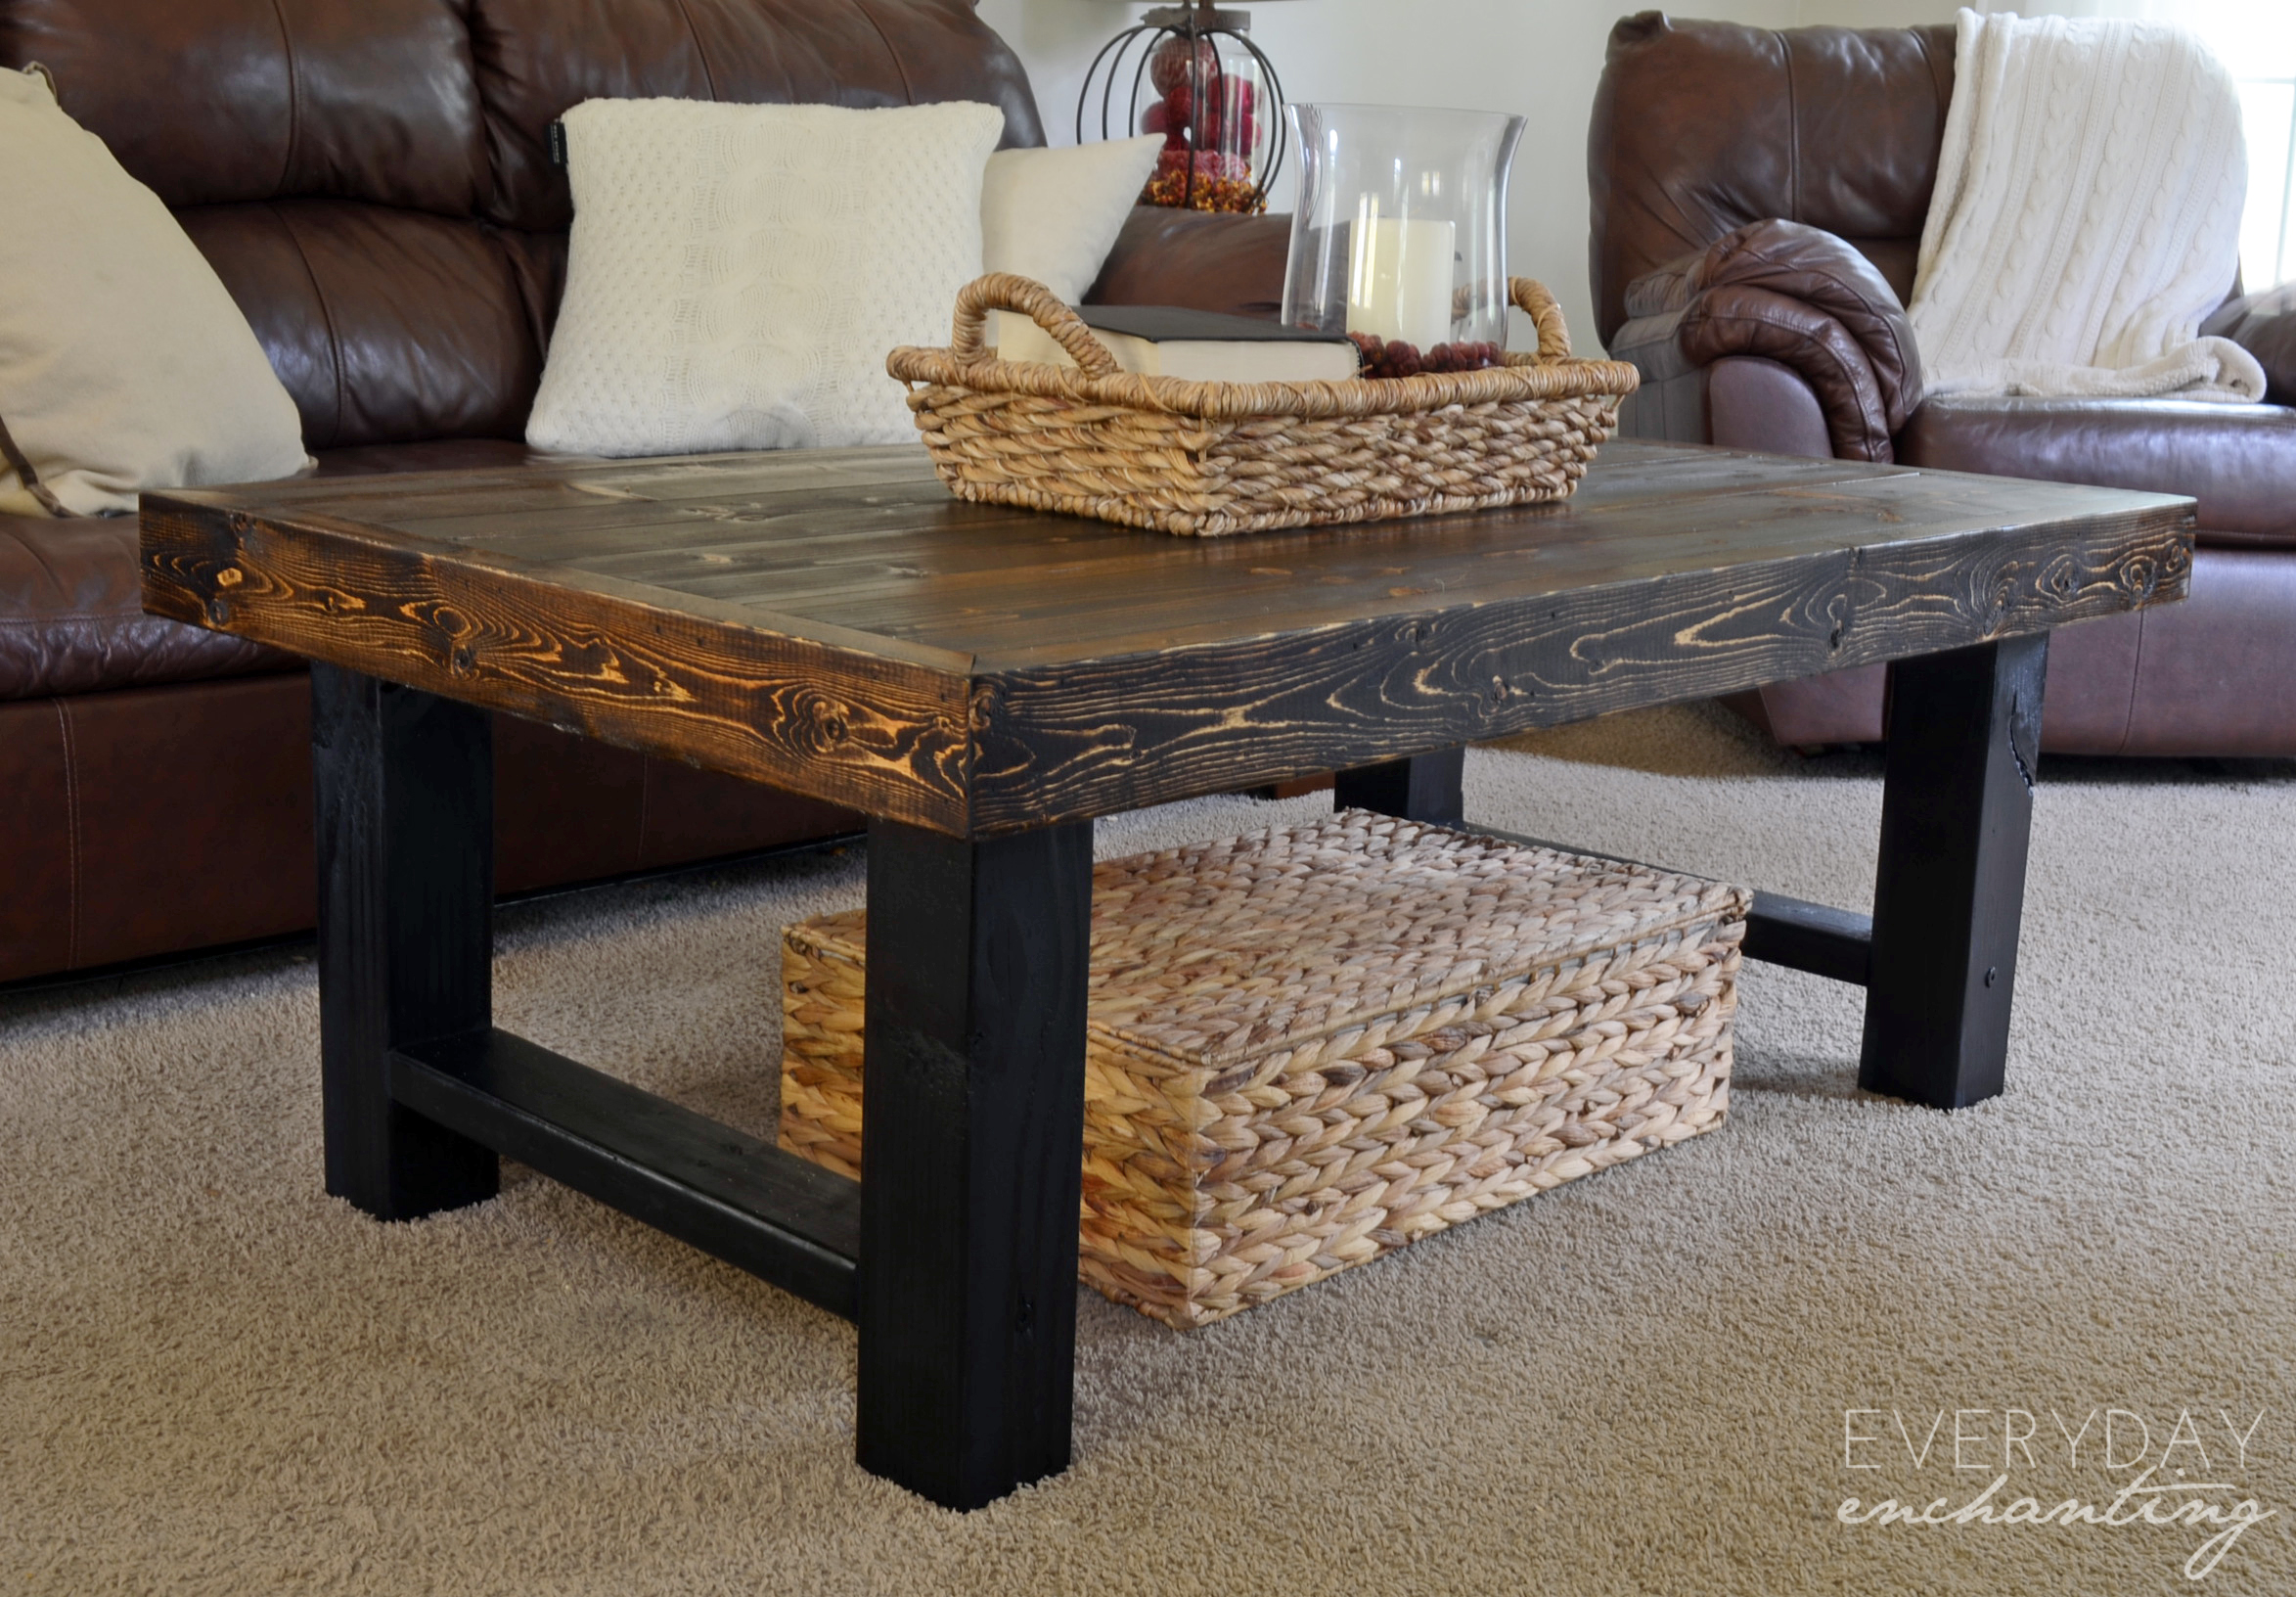 Remodelaholic diy simple wood slab coffee table diy simple coffee table learn how to build a diy simple coffee table by everyday geotapseo Image collections